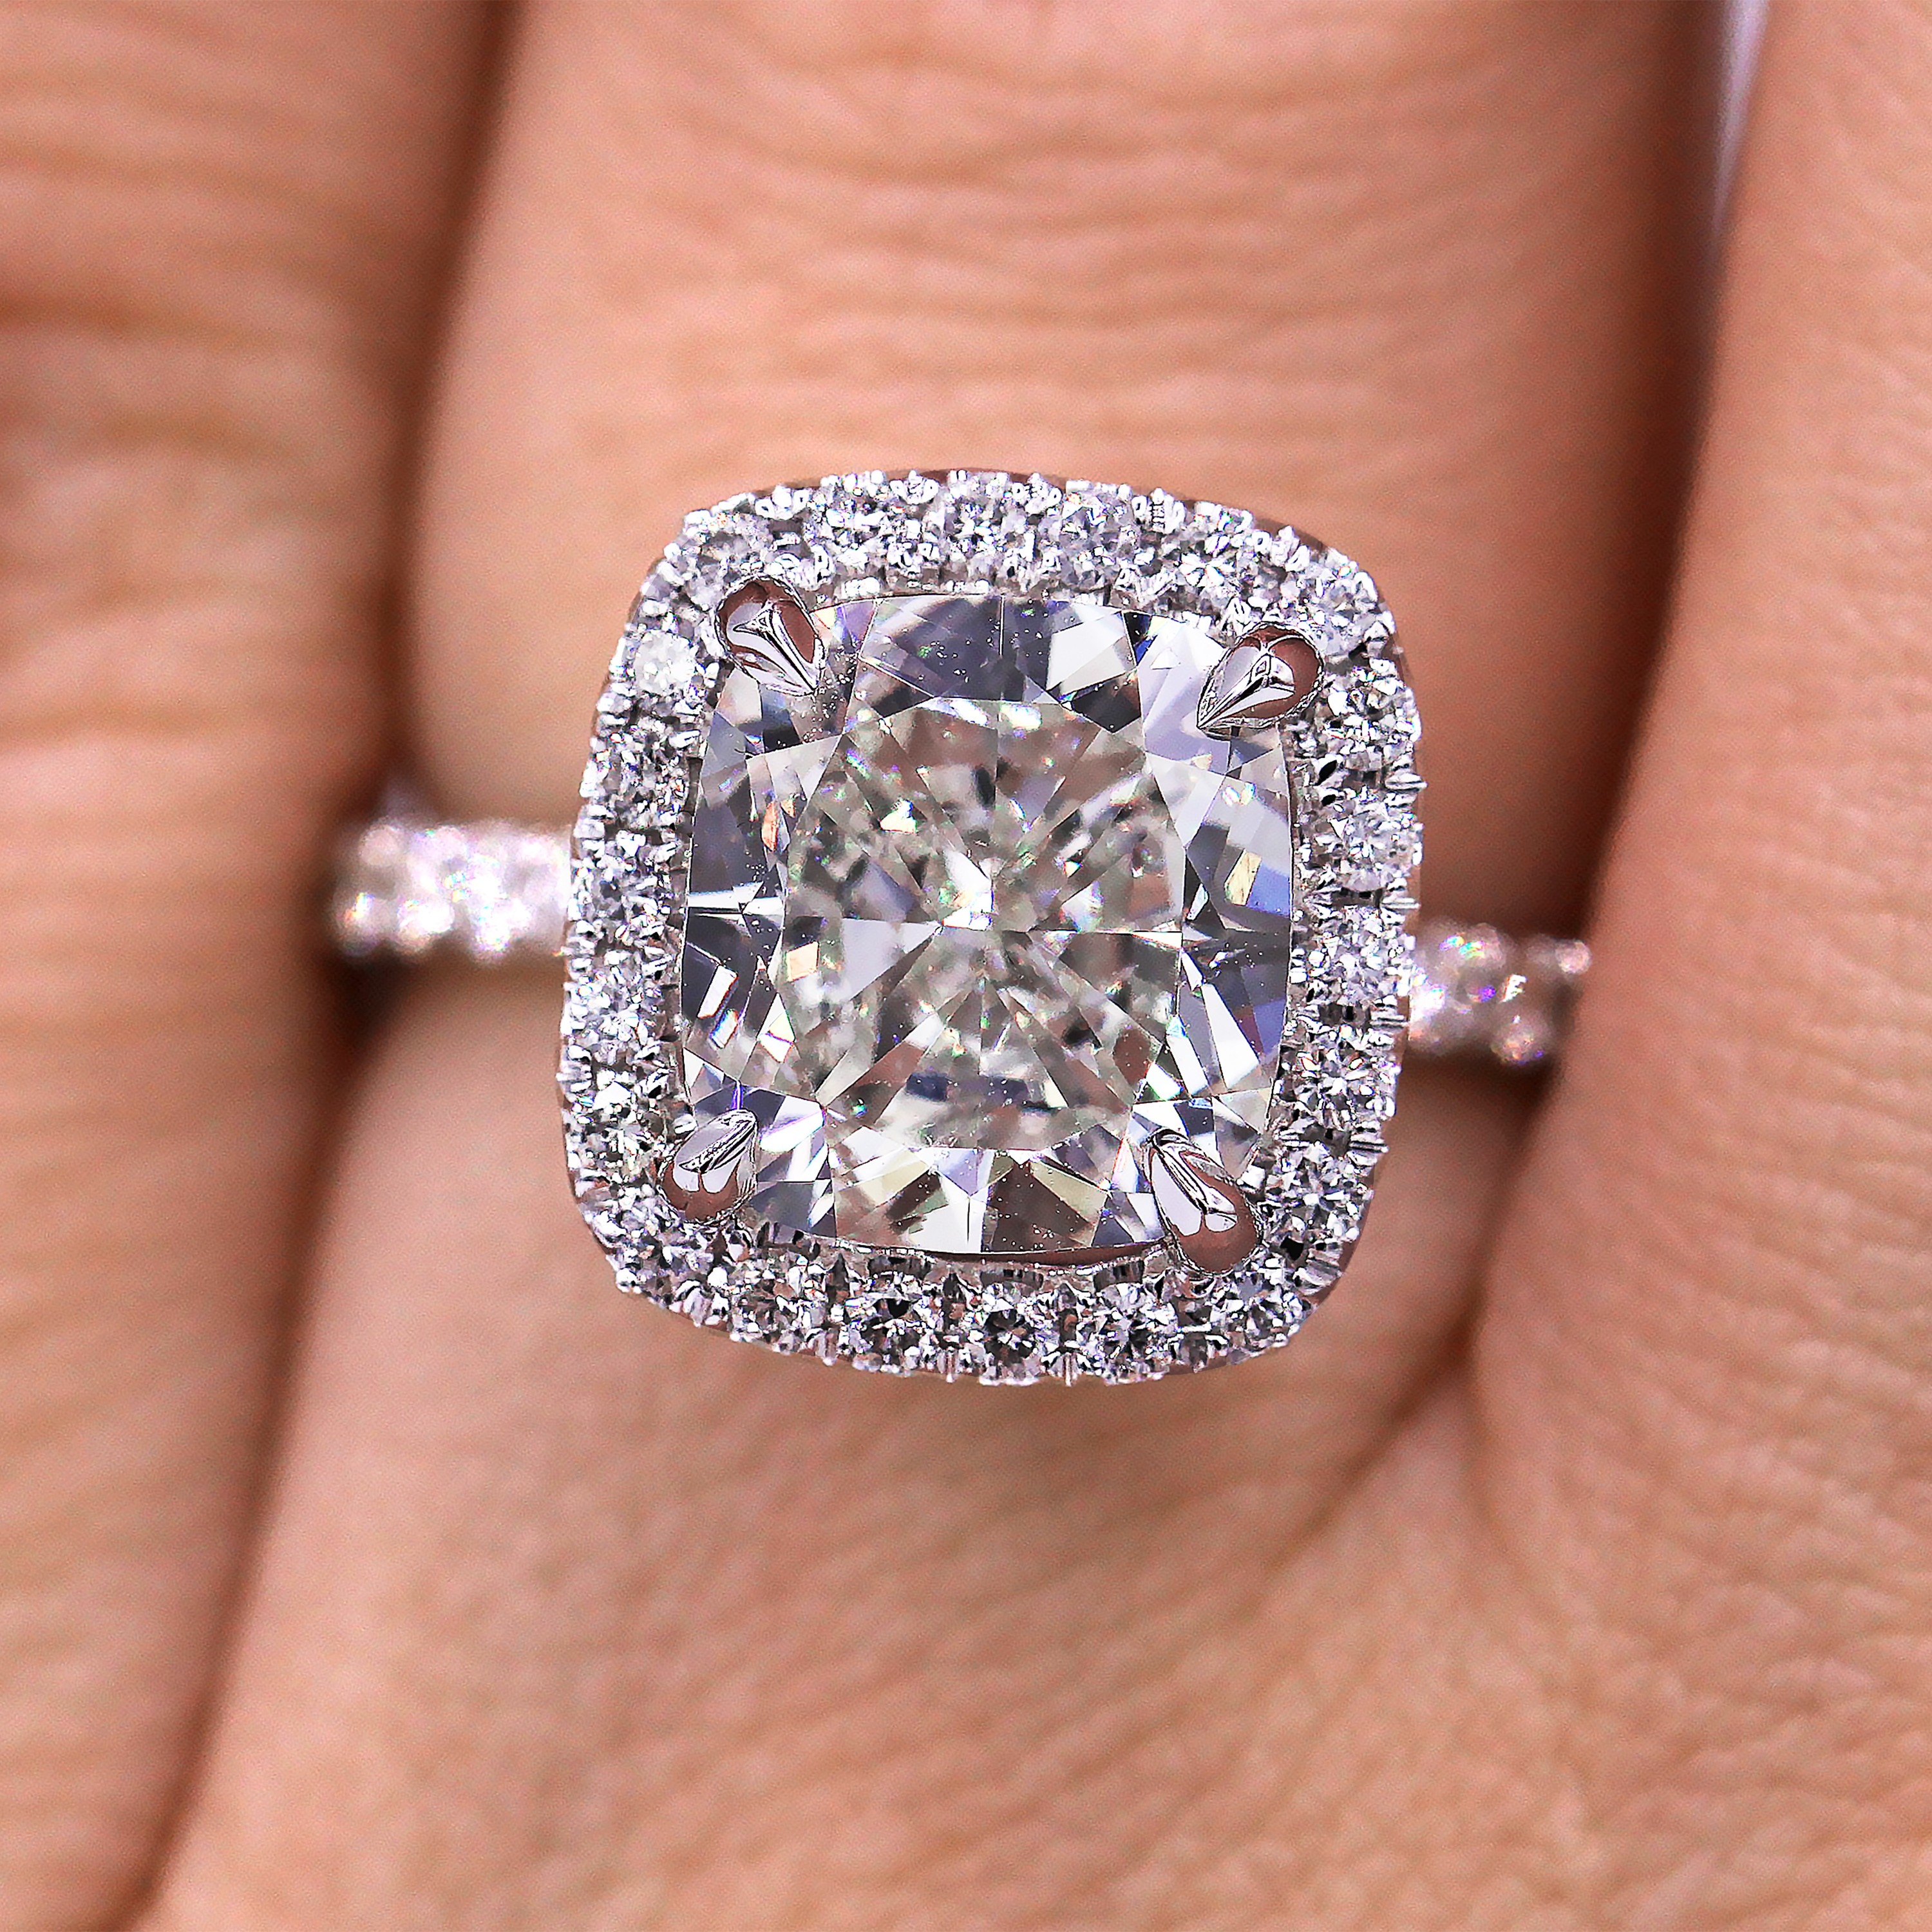 Elegant and certified  3.13carat halo diamond engagement ring